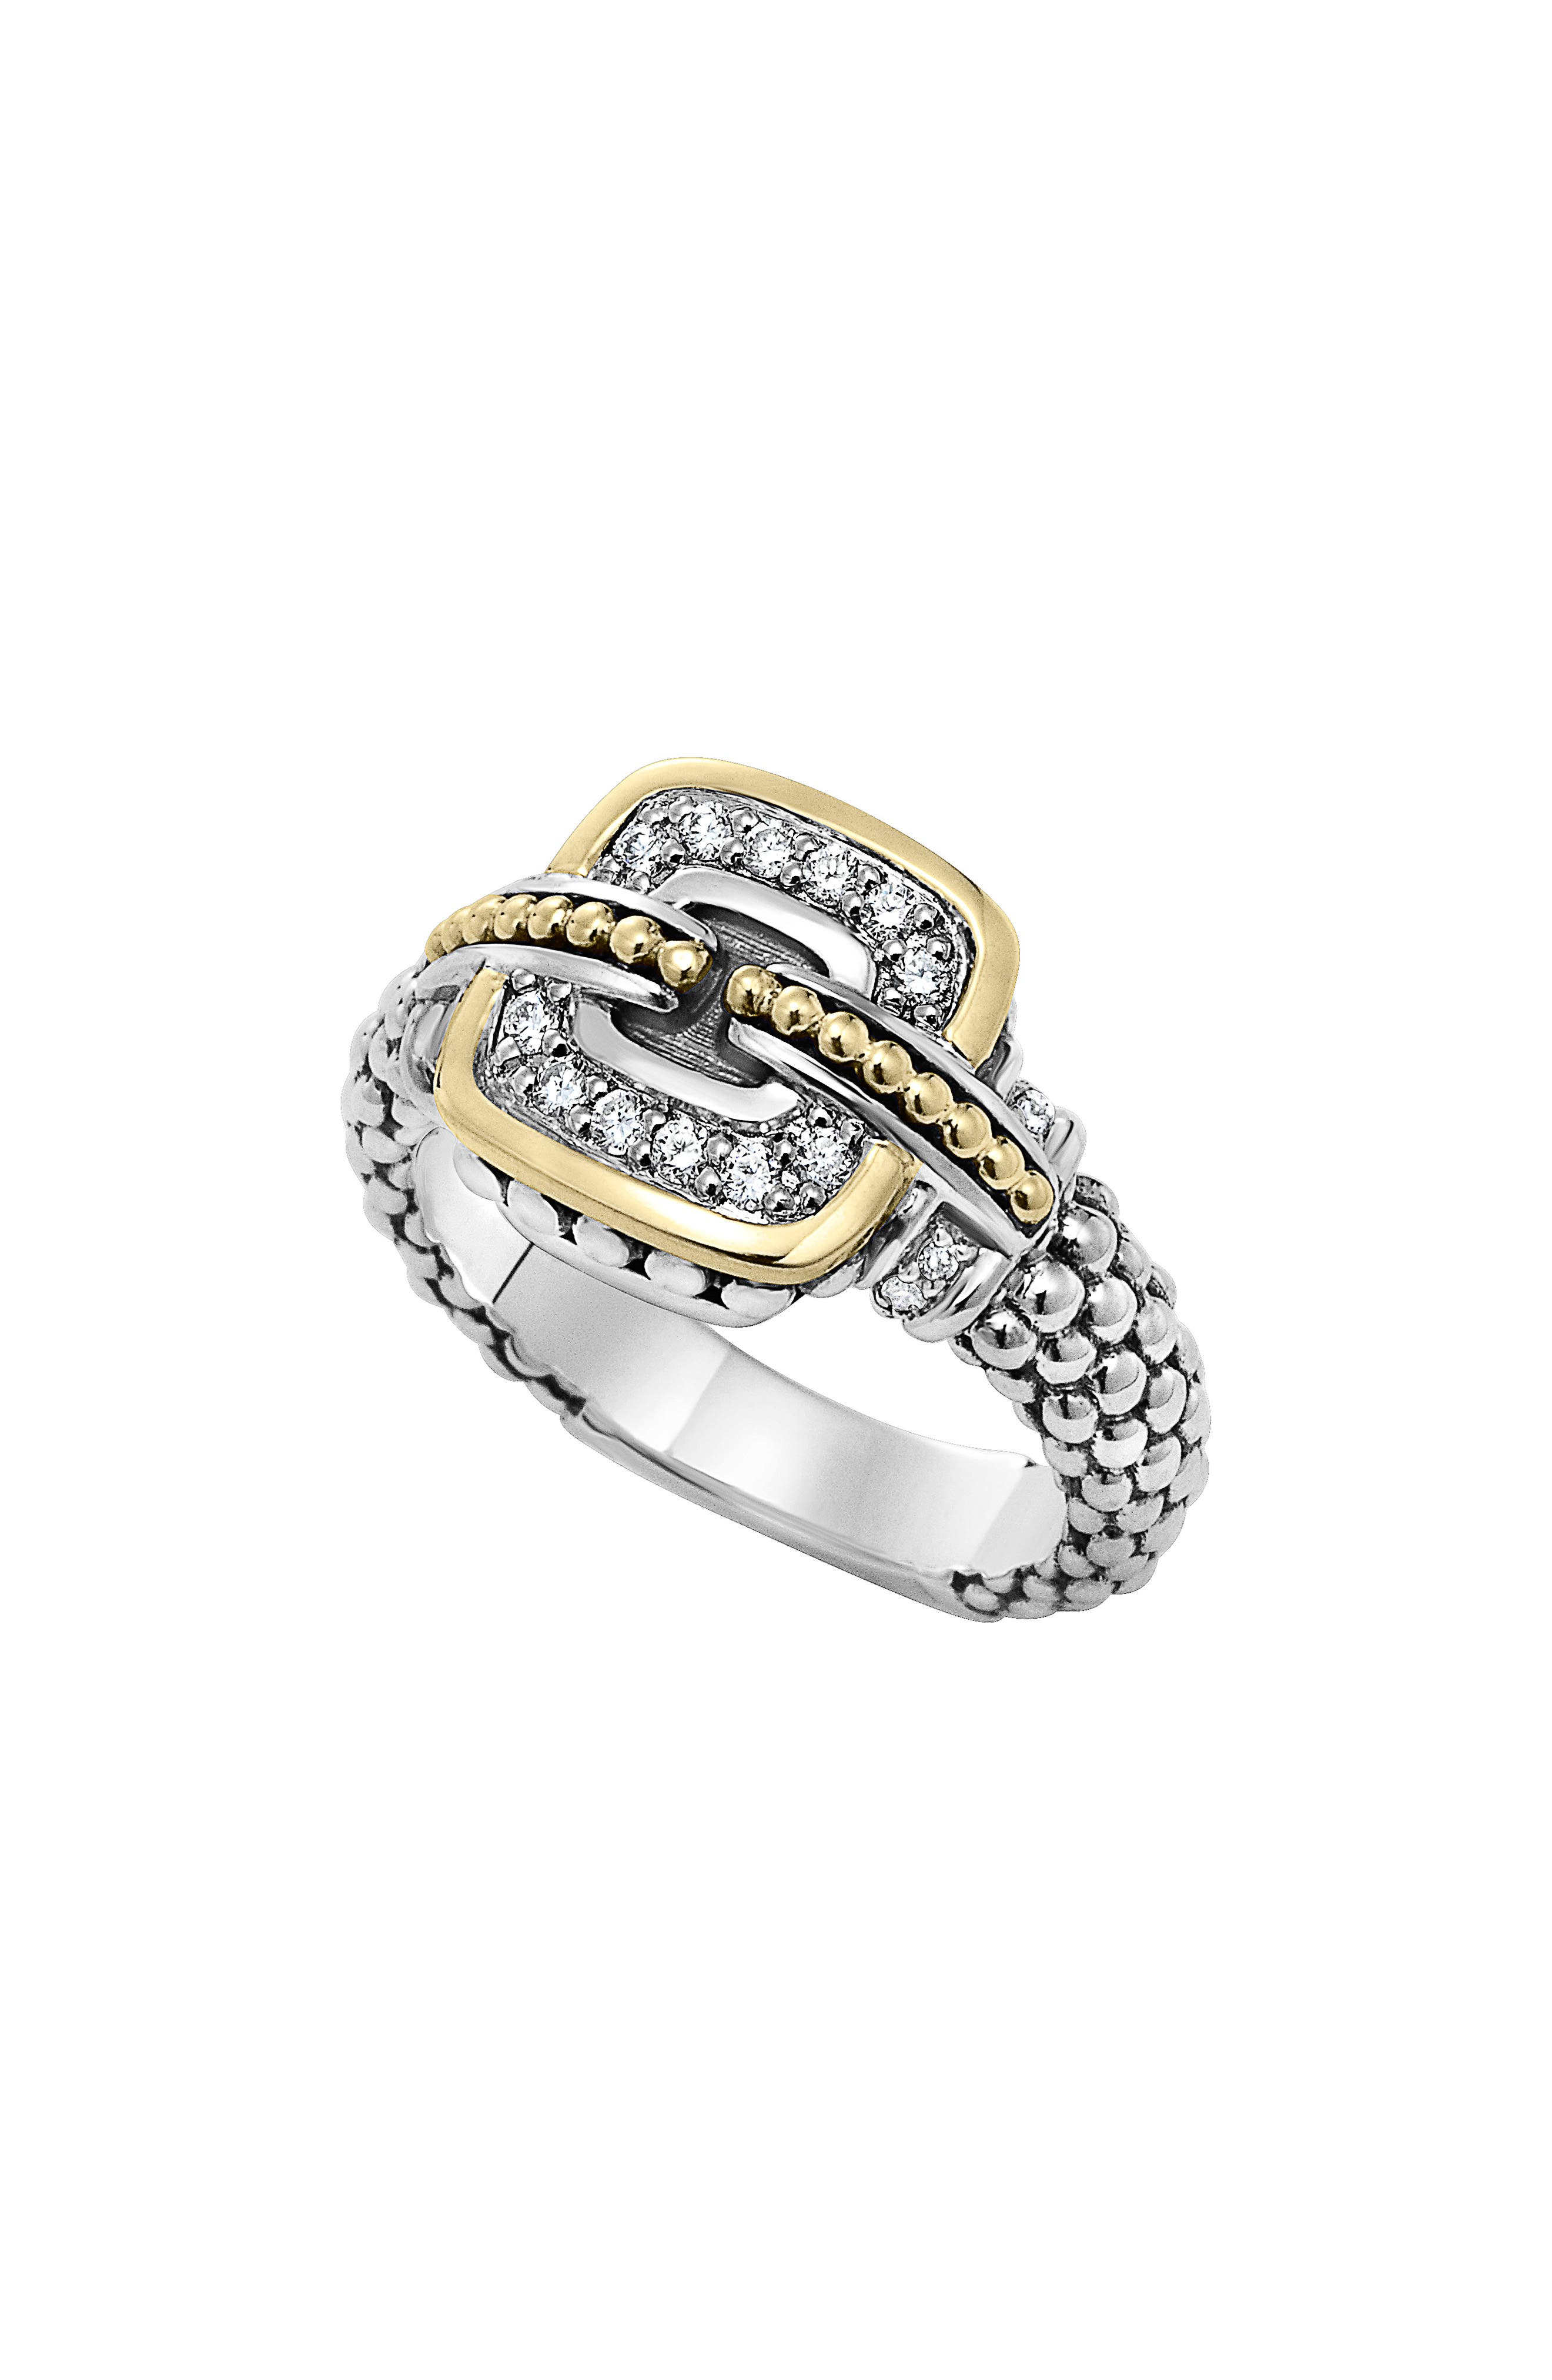 Main Image - LAGOS 'Cushion' Small Diamond Ring